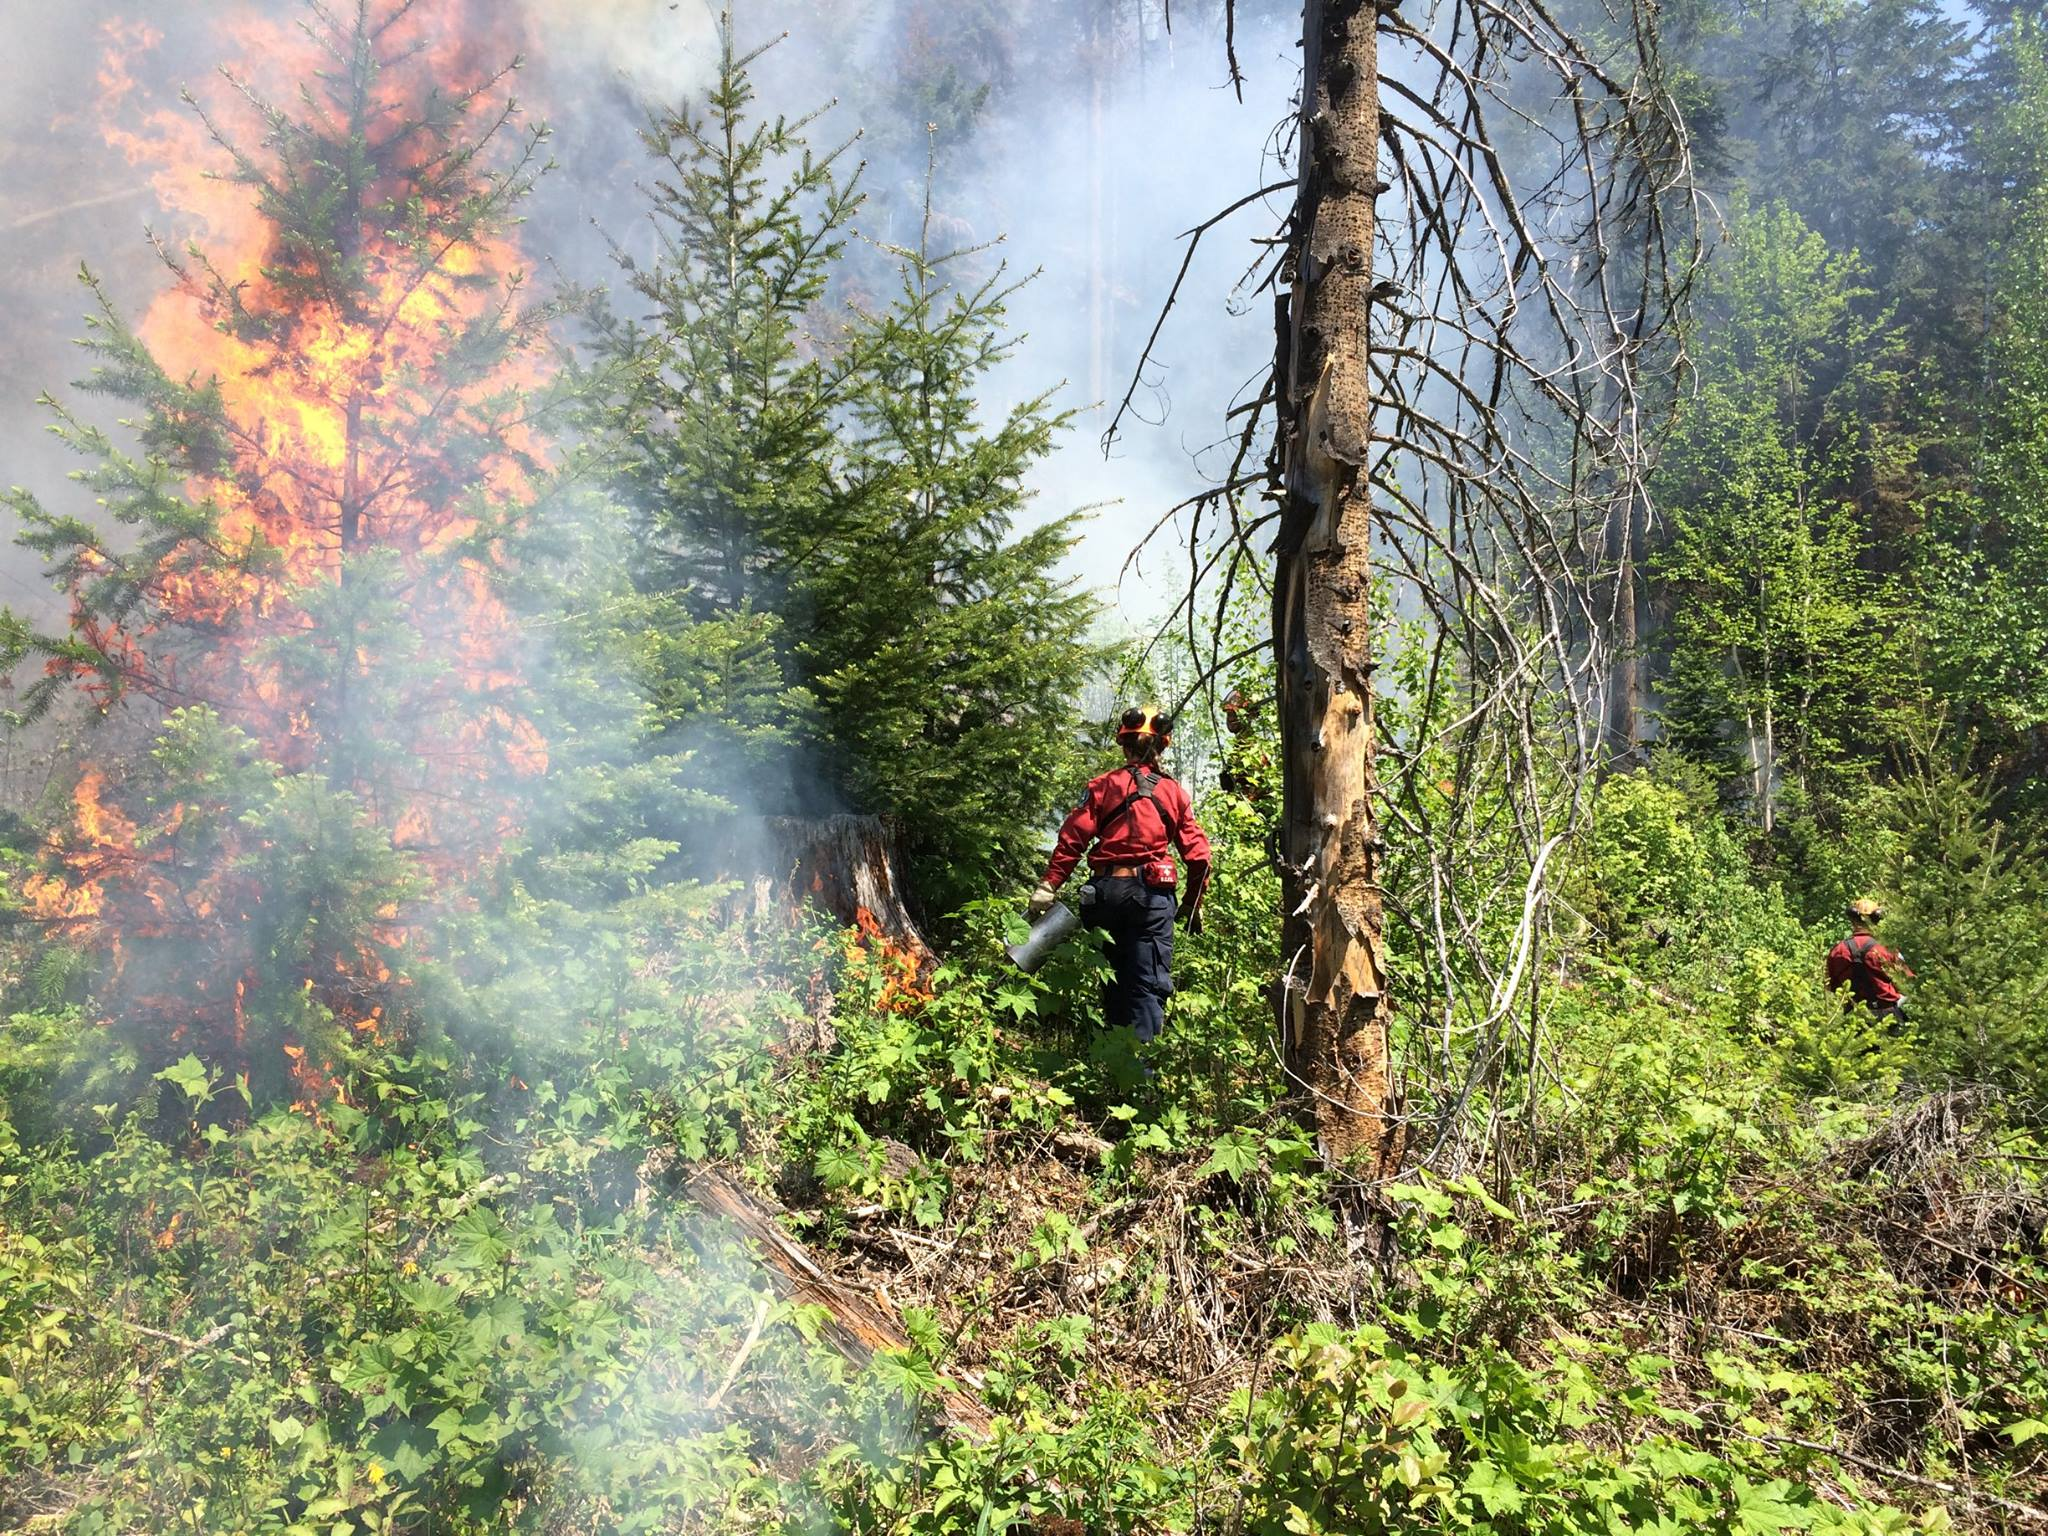 B.C Wildfire Service crews ready to act if Xusum Creek blaze burning gets any worse